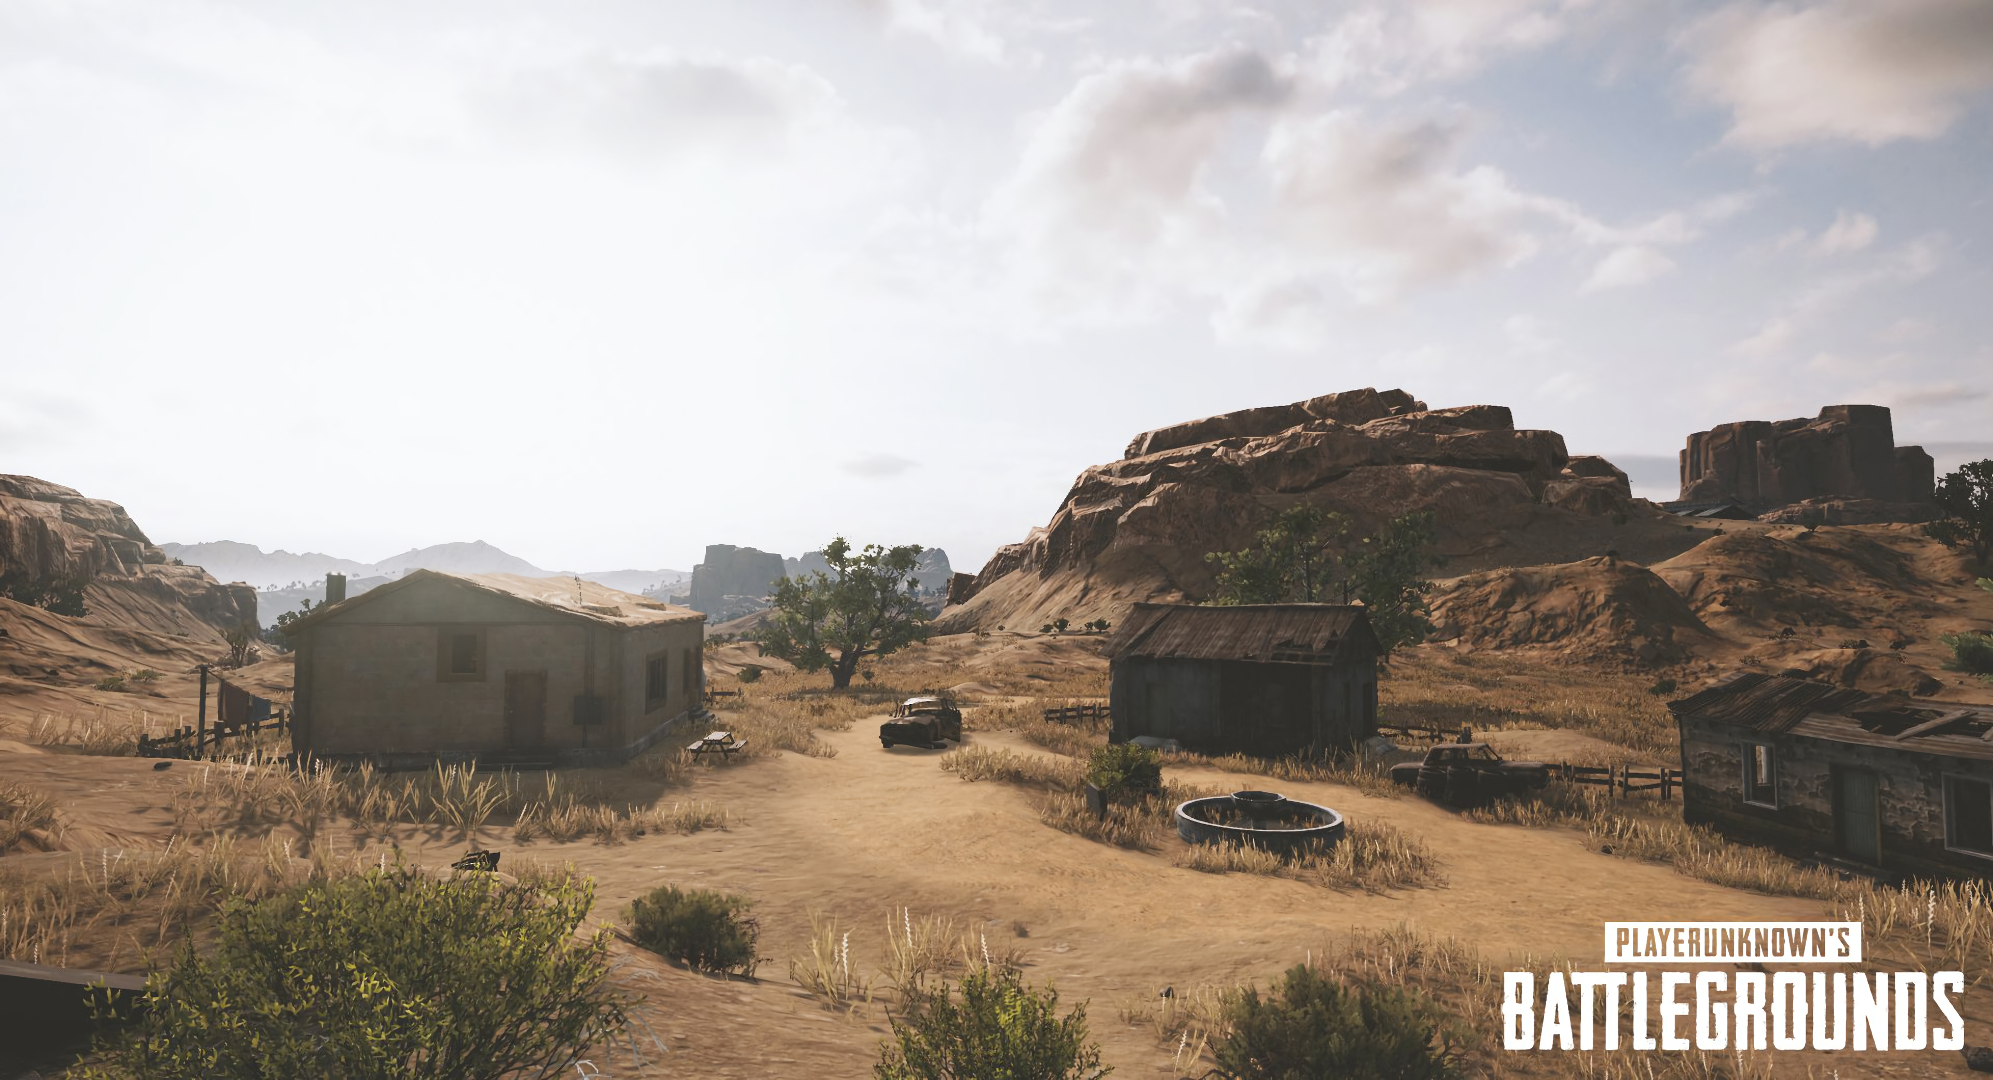 Player Unknown S Battlegrounds Pubg 4k Pubg Wallpaper Phone Pubg Wallpaper Iphone Pubg Wallpaper 192 Background Images Picsart Background Alone Photography